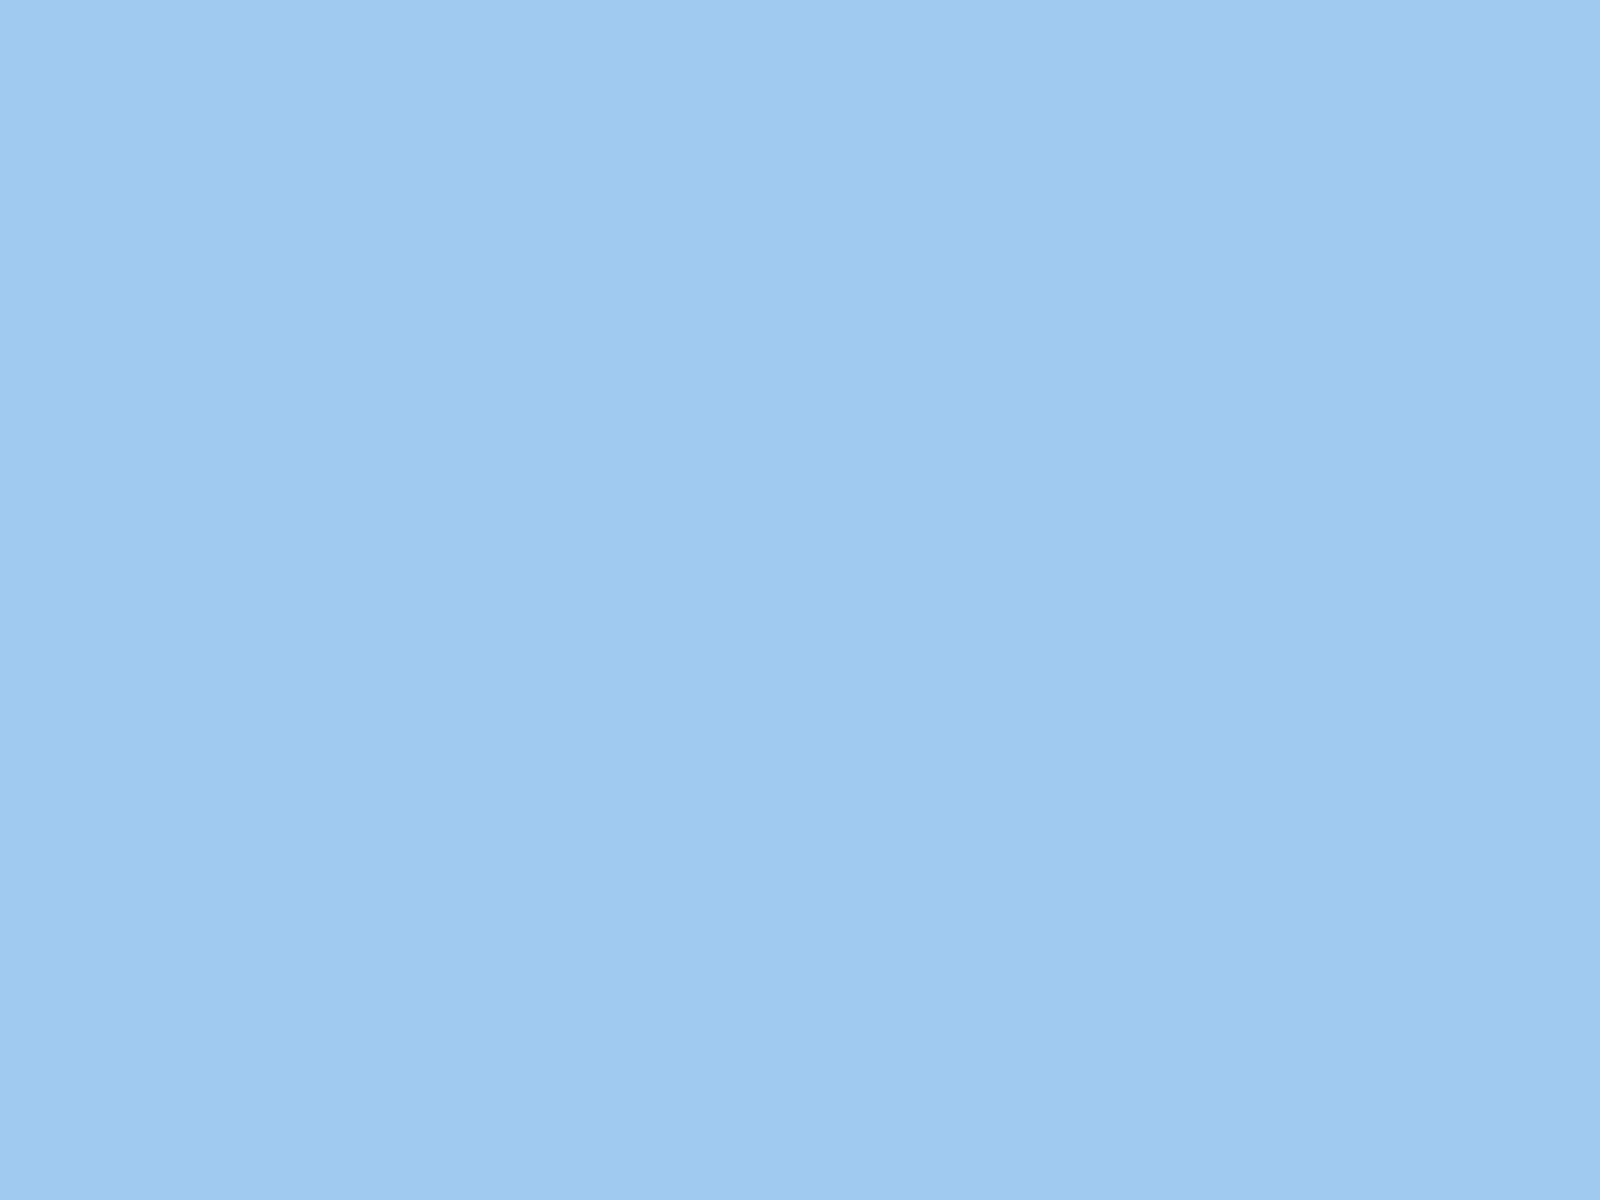 1600x1200 Baby Blue Eyes Solid Color Background